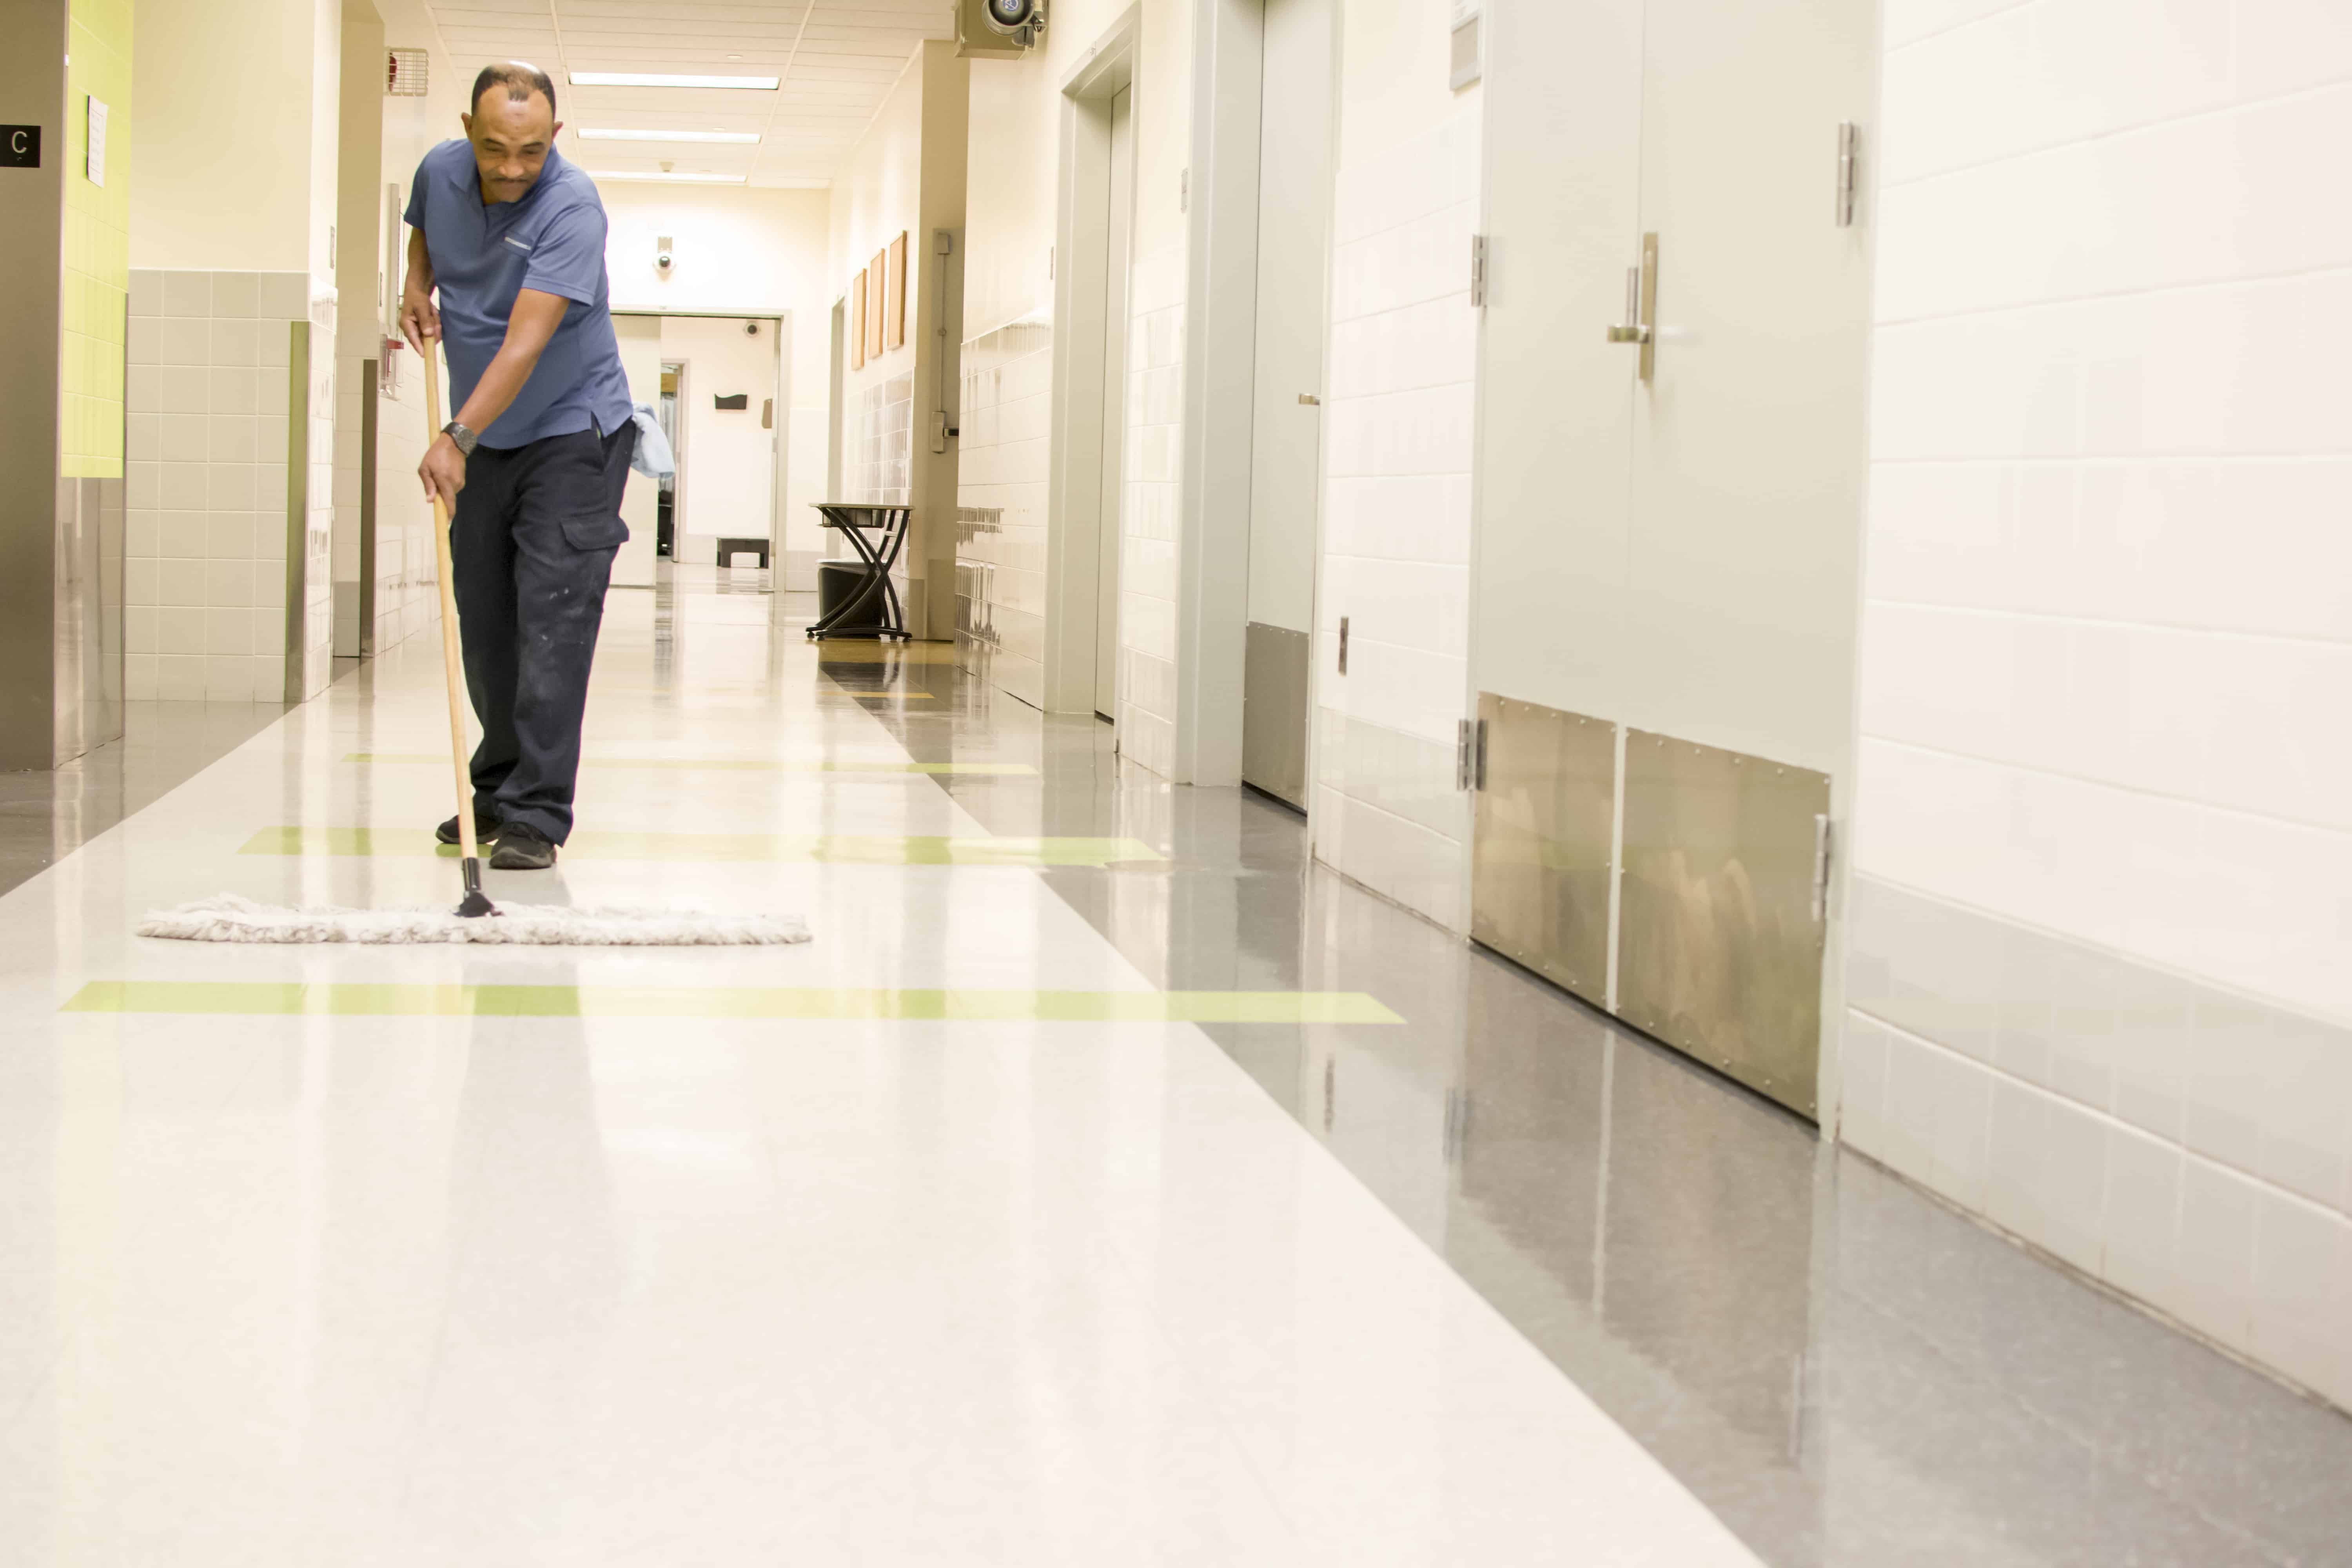 Commercial Janitorial Services Janitorial services